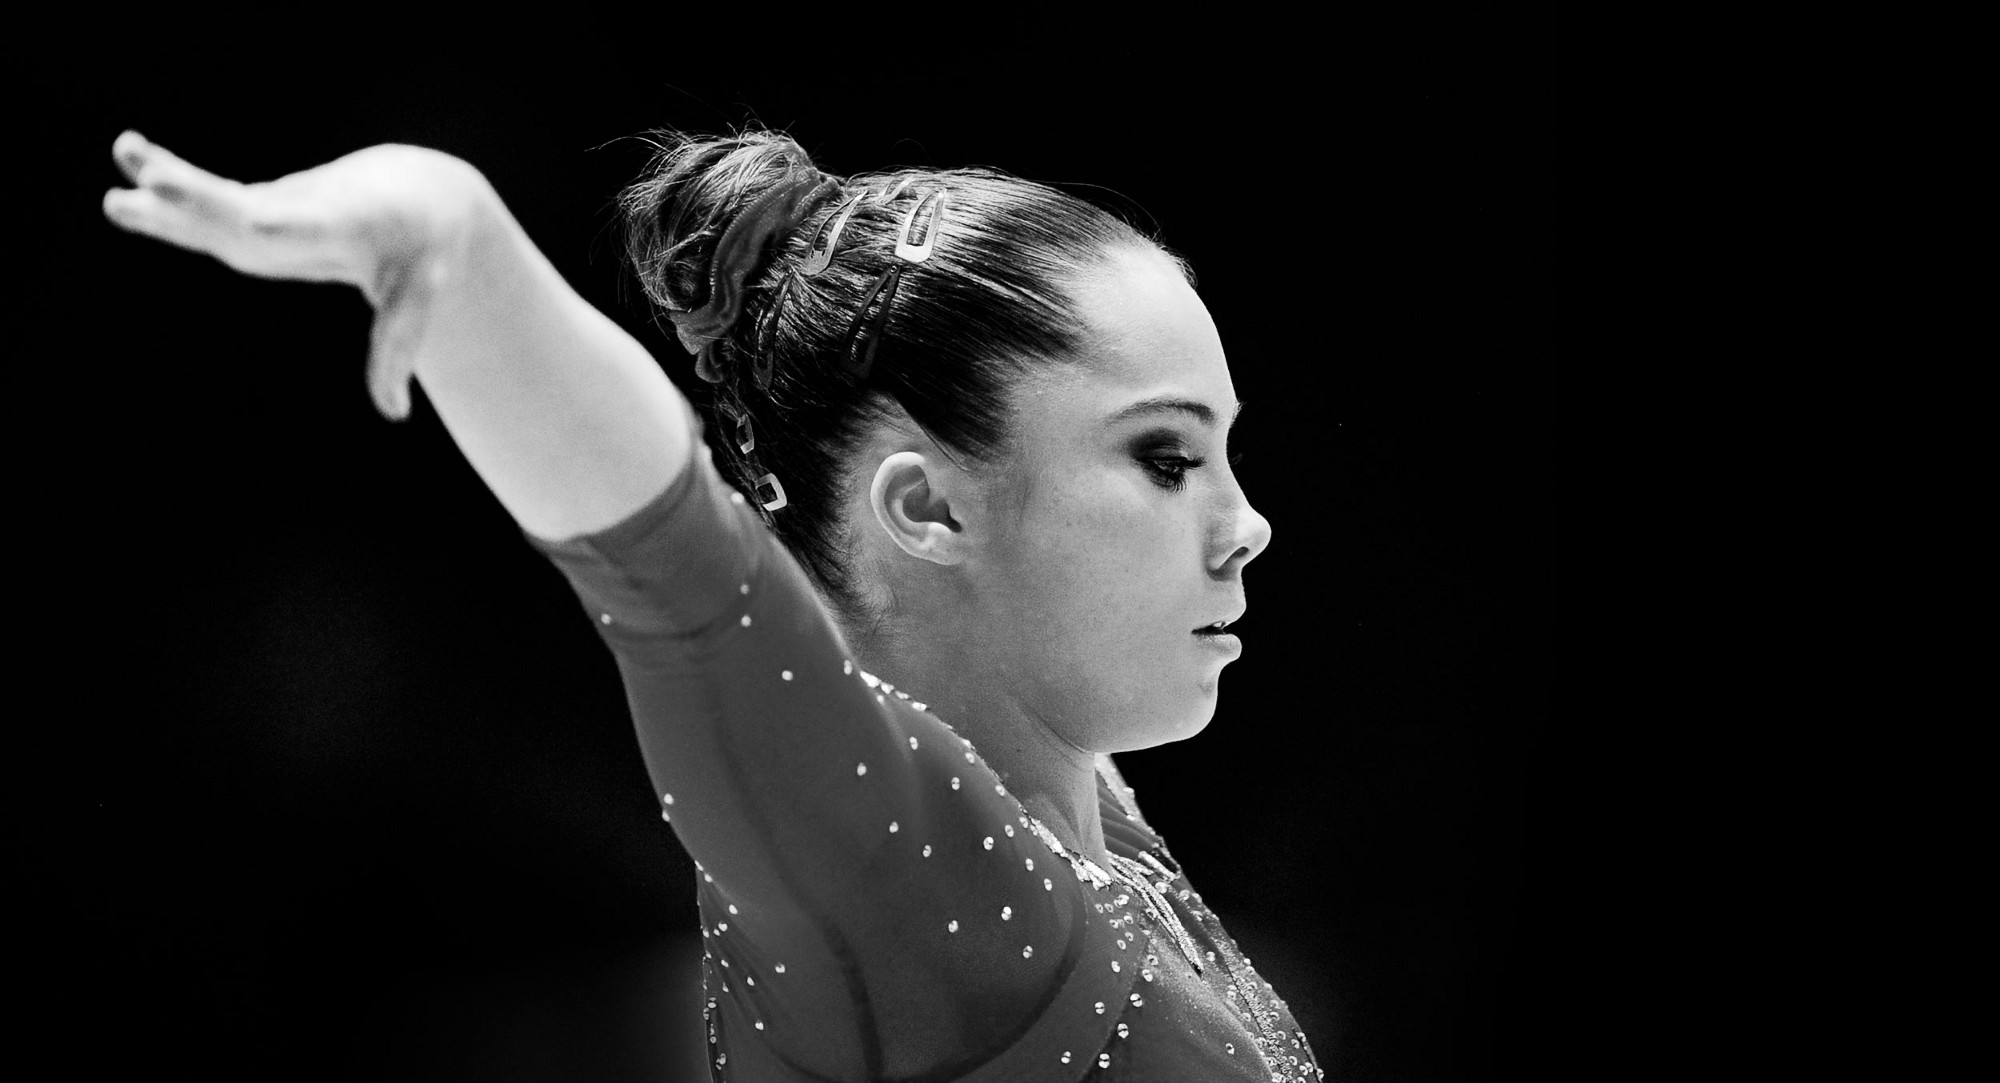 McKayla Maroney Sues USA Gymnastics Over Sexual-Abuse-Silencing Allegations